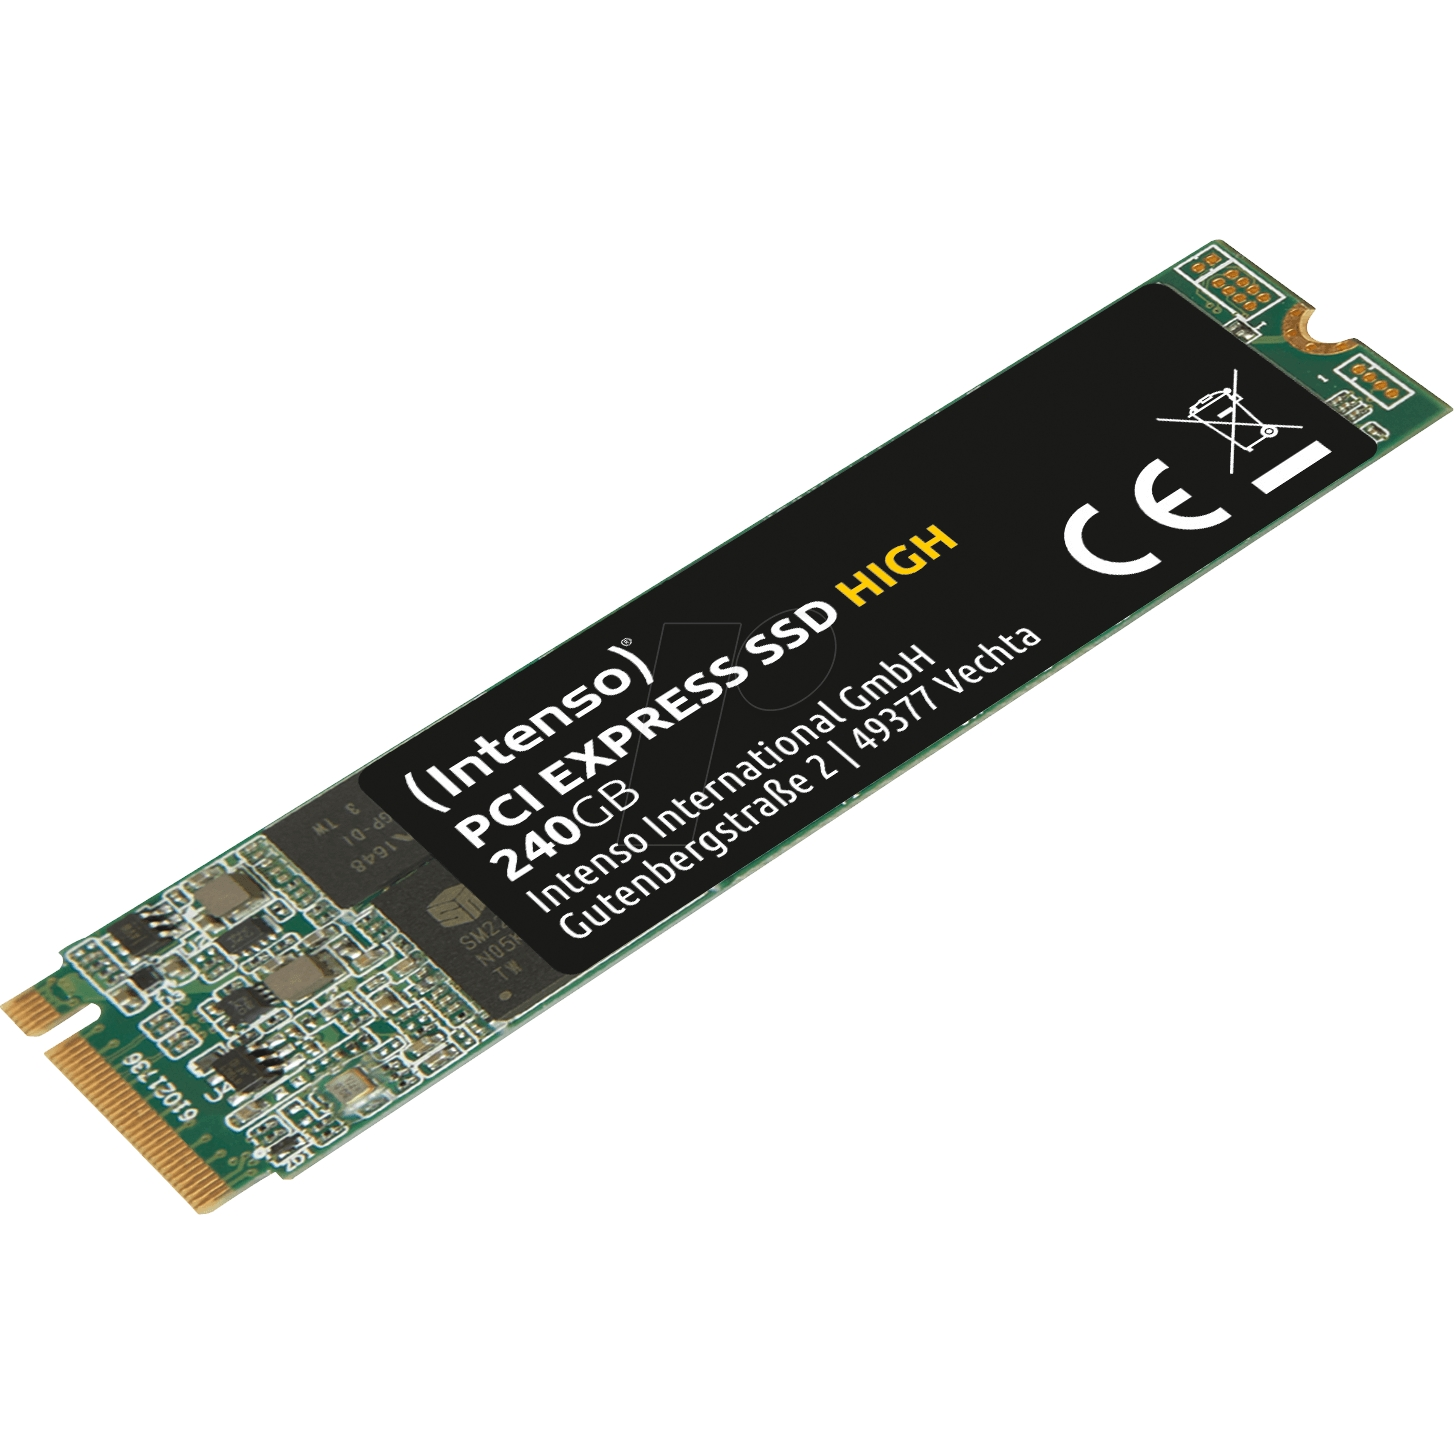 INTENSO HIGH 240GB 1700/800MB/s 4mm NVMe PCIe M.2 SSD 3834440 3D-NAND